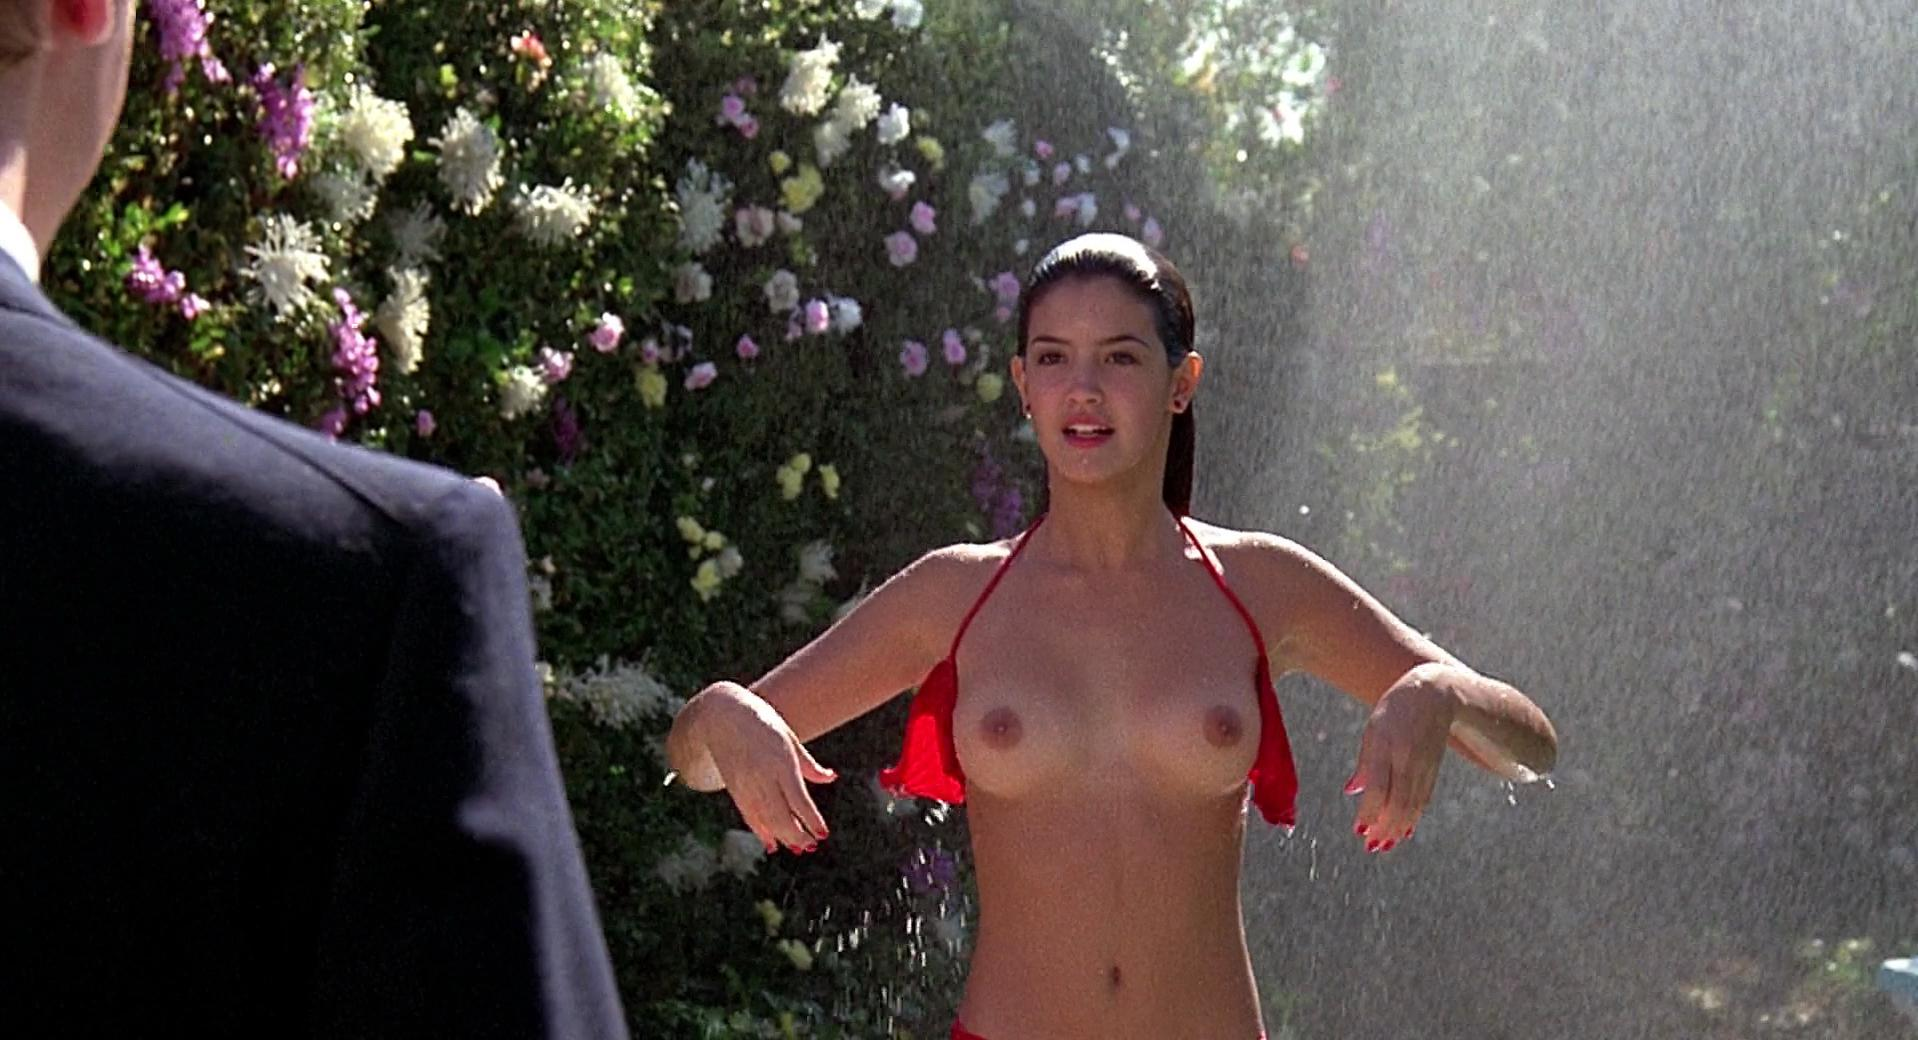 Phoebe Cates nude - Fast Times at Ridgemont High (1982)